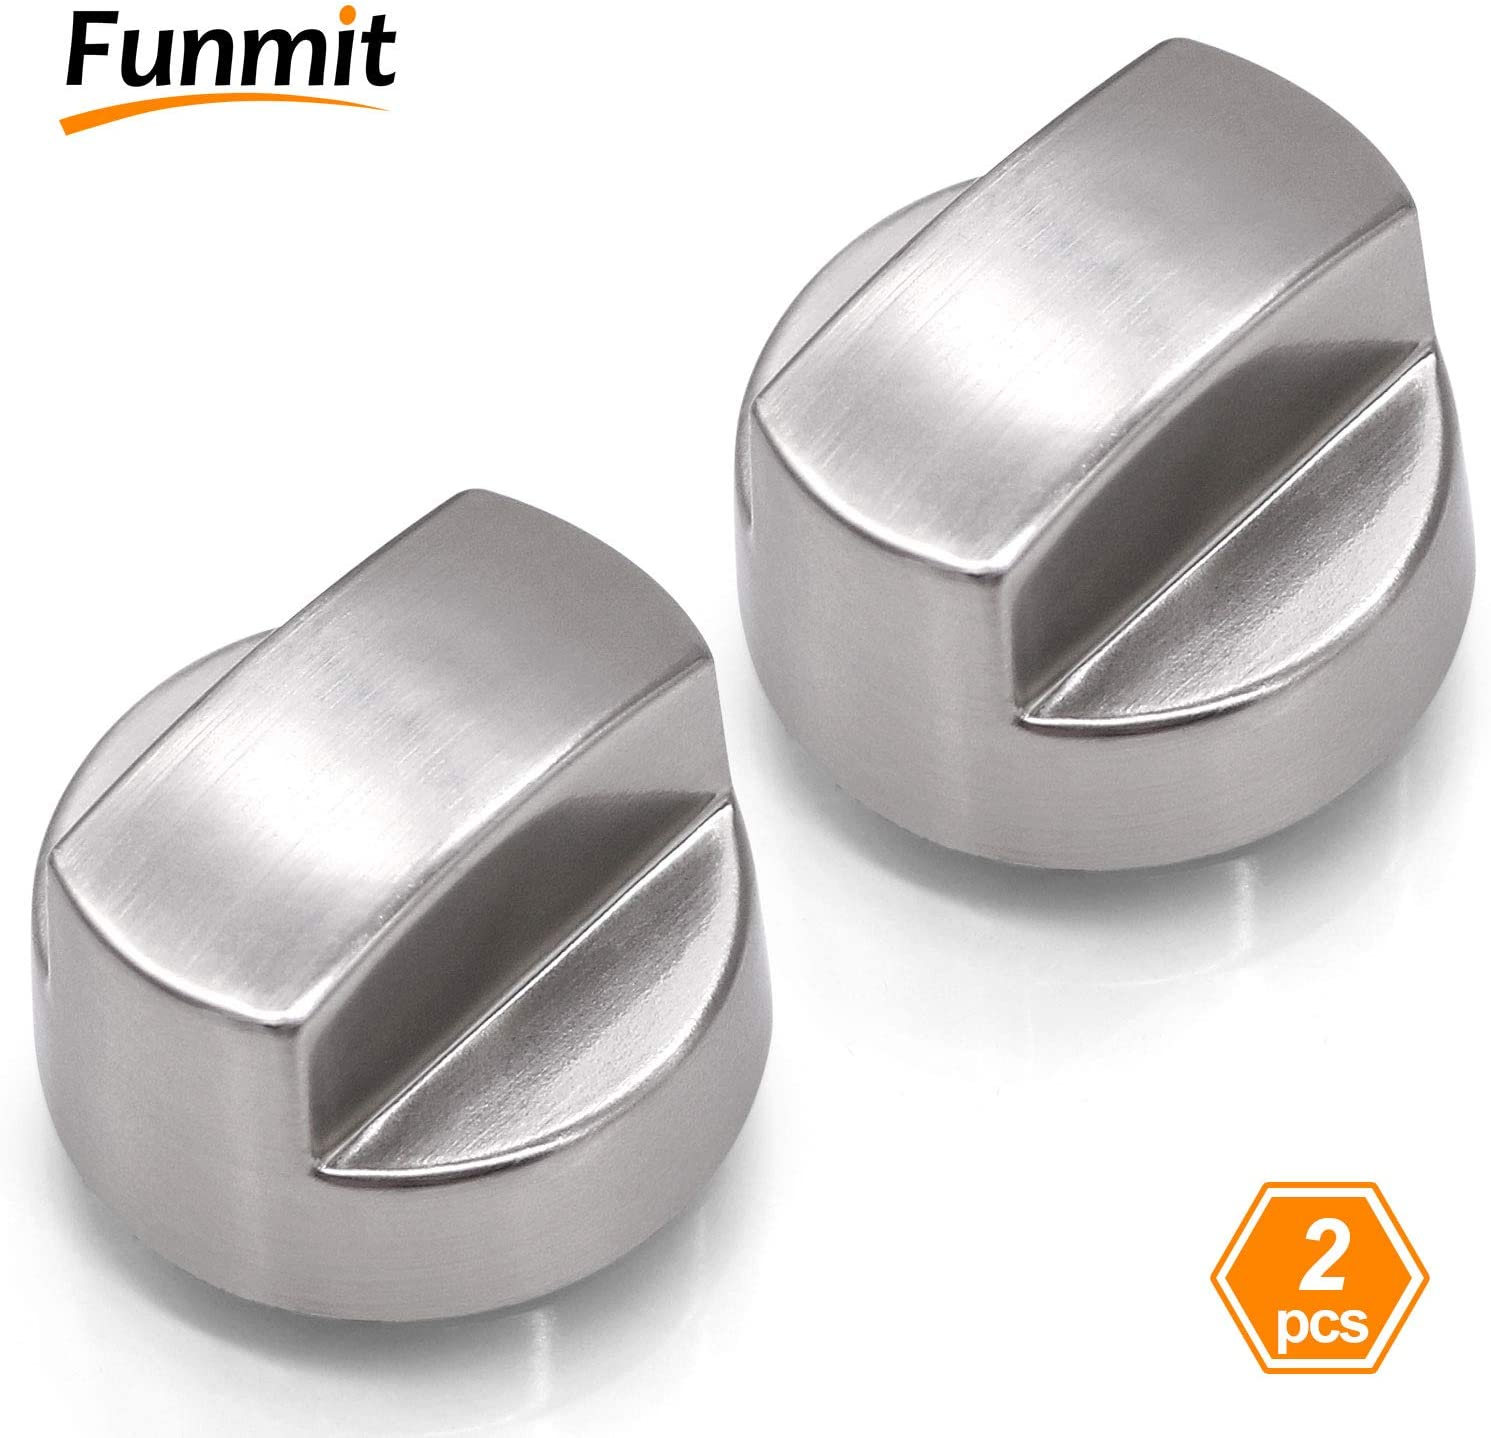 Funmit 811195 Pro Ventilation Hood Knob 805328 KIP5D44 5D4 Replacement for Sub-Zero Wolf in Silver with 2-Pack